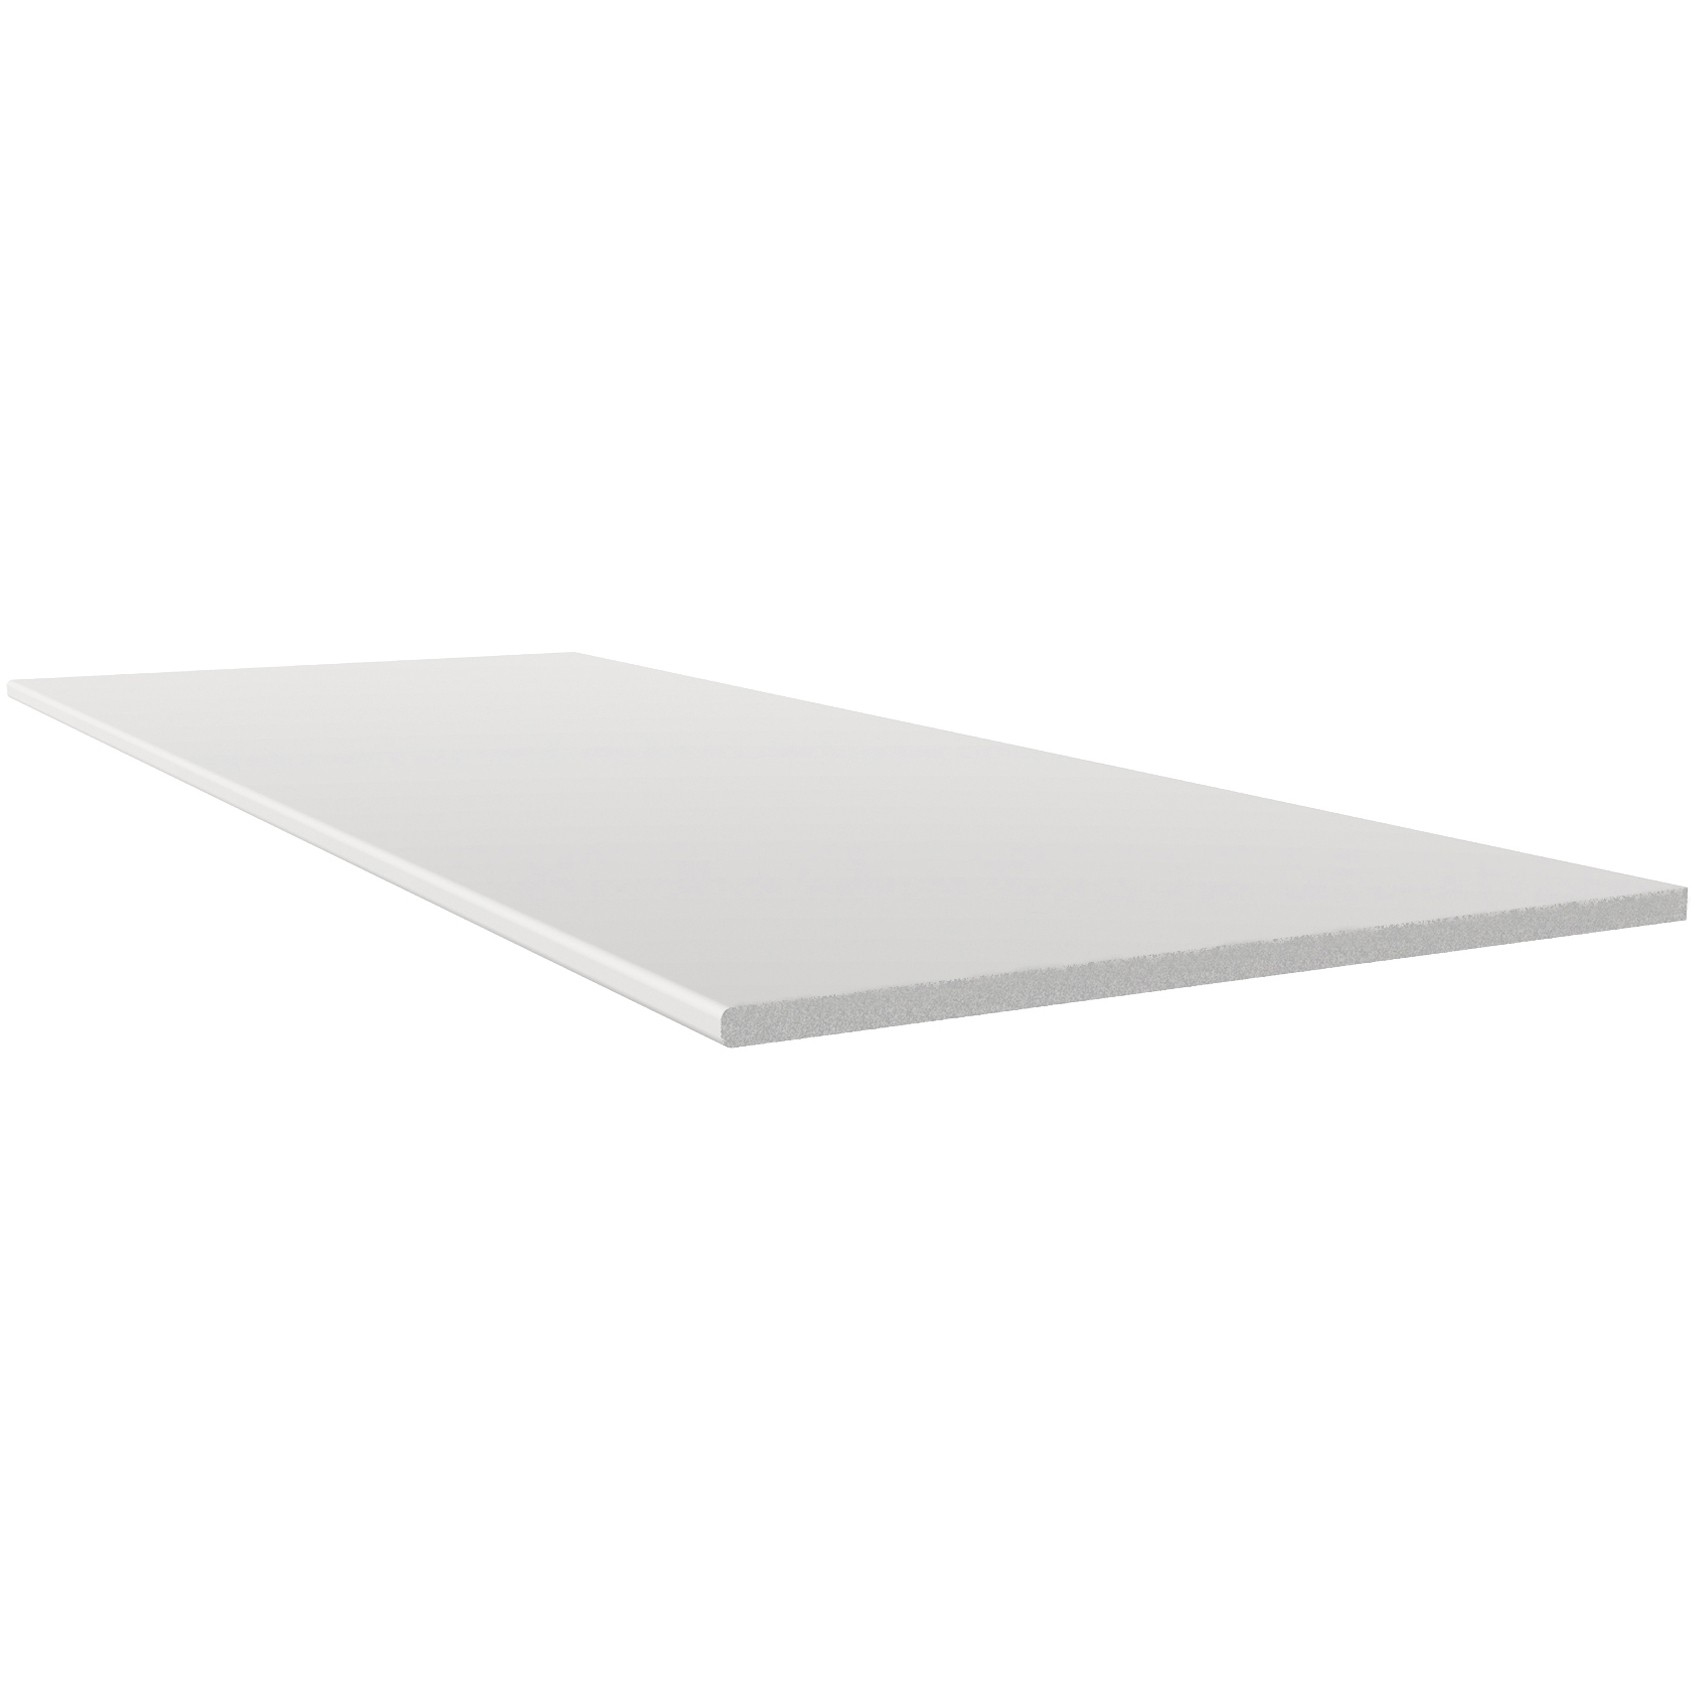 Freefoam 10mm Solid Soffit Board - White, 605mm, 2.5 metre